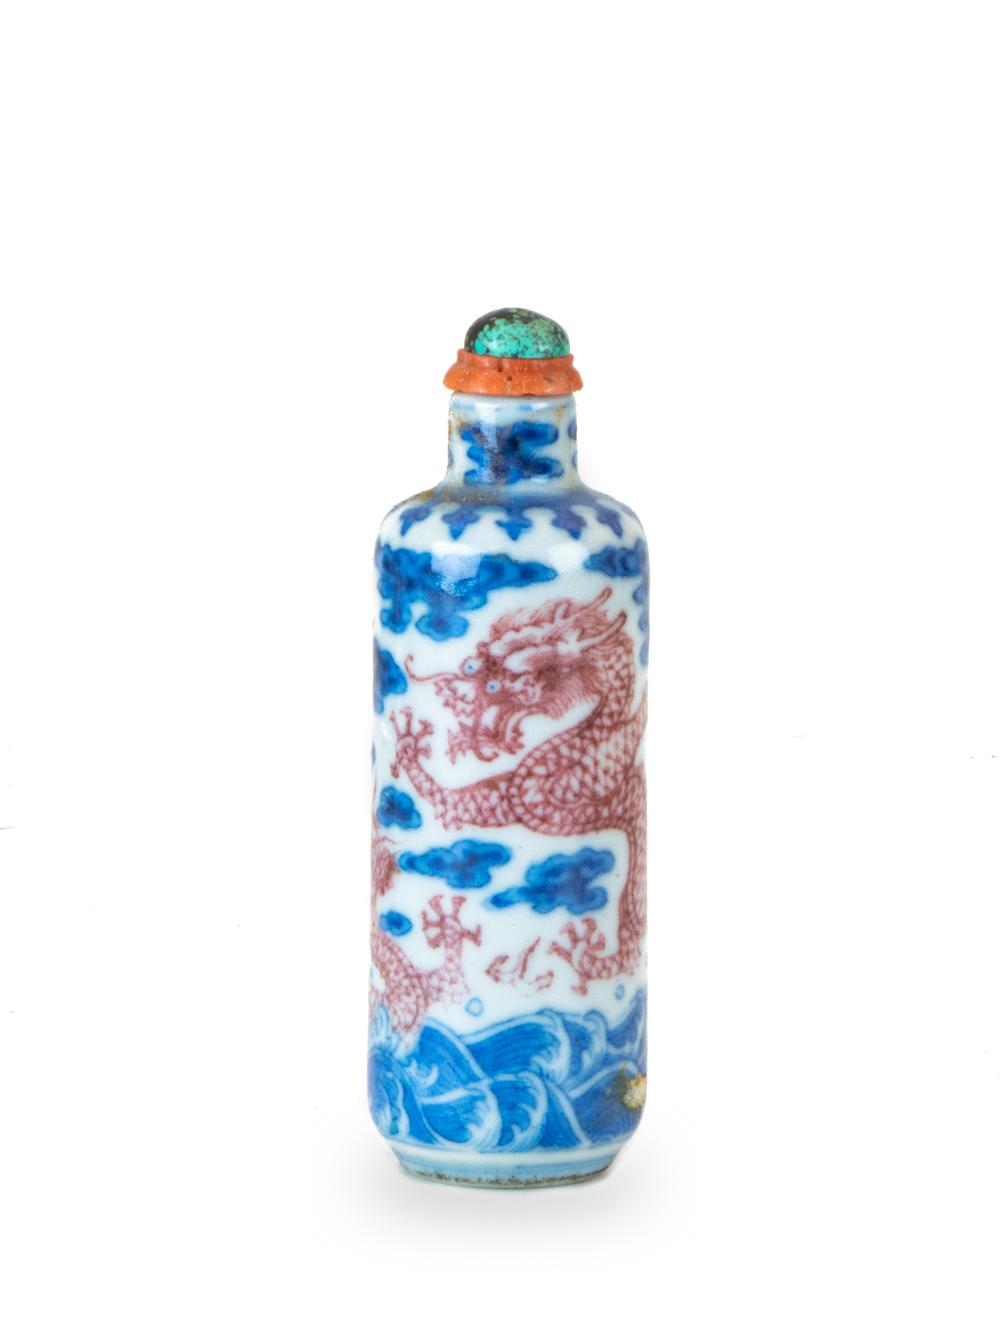 CHINESE BLUE & RED UNDERGLAZE SNUFF BOTTLE,18TH CENTURY